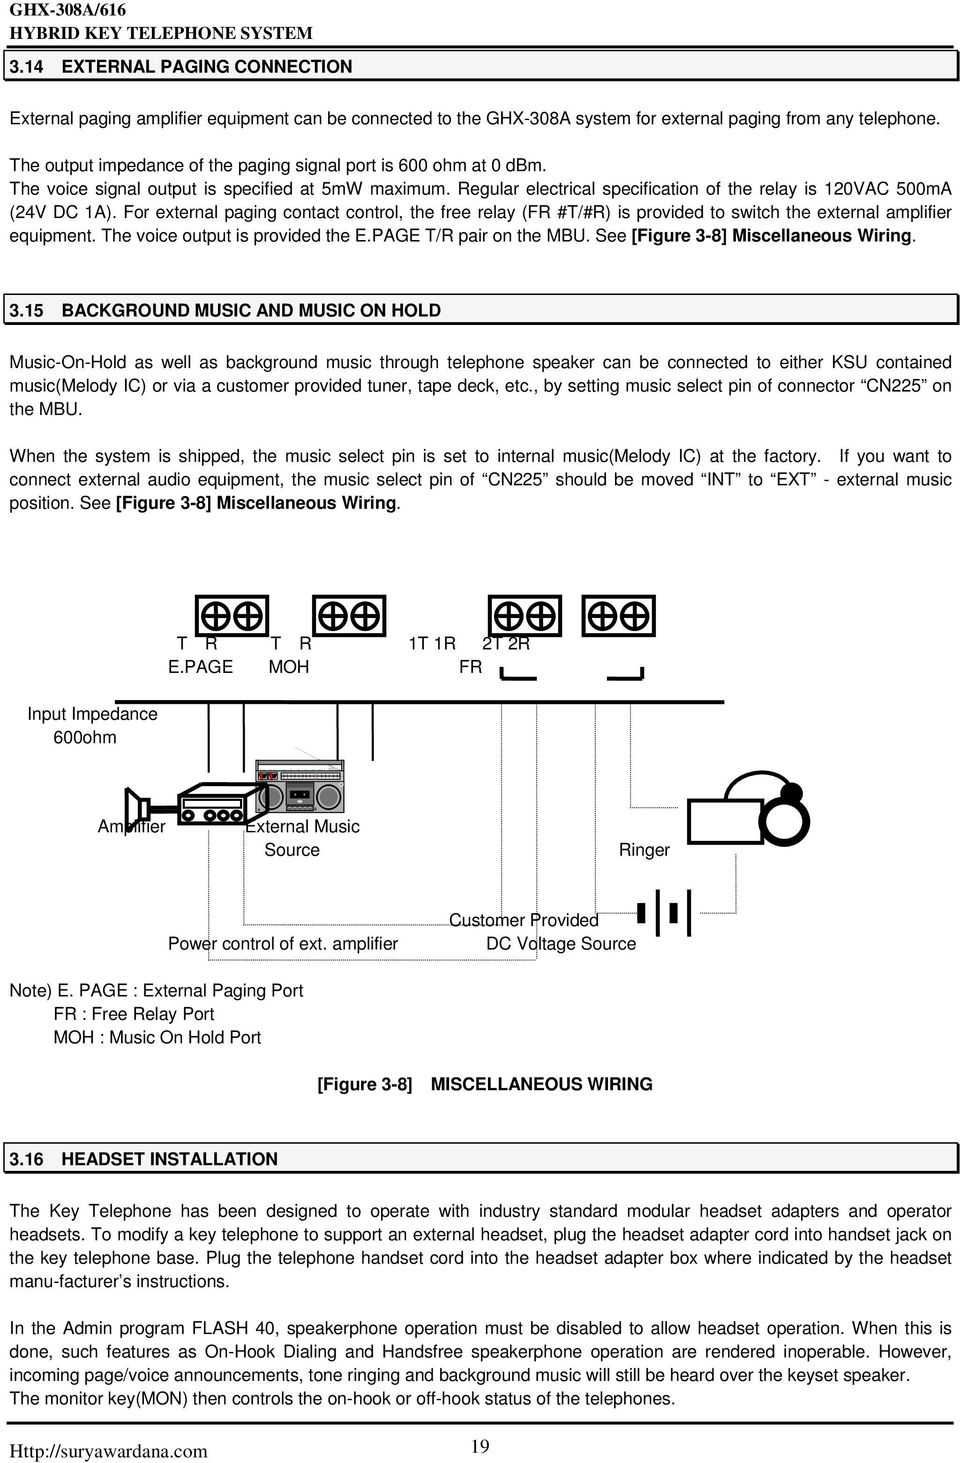 Hybrid Key Telephone System Installation And Programming Manual Pdf Wiring Voltage For External Paging Contact Control The Free Relay Fr T R